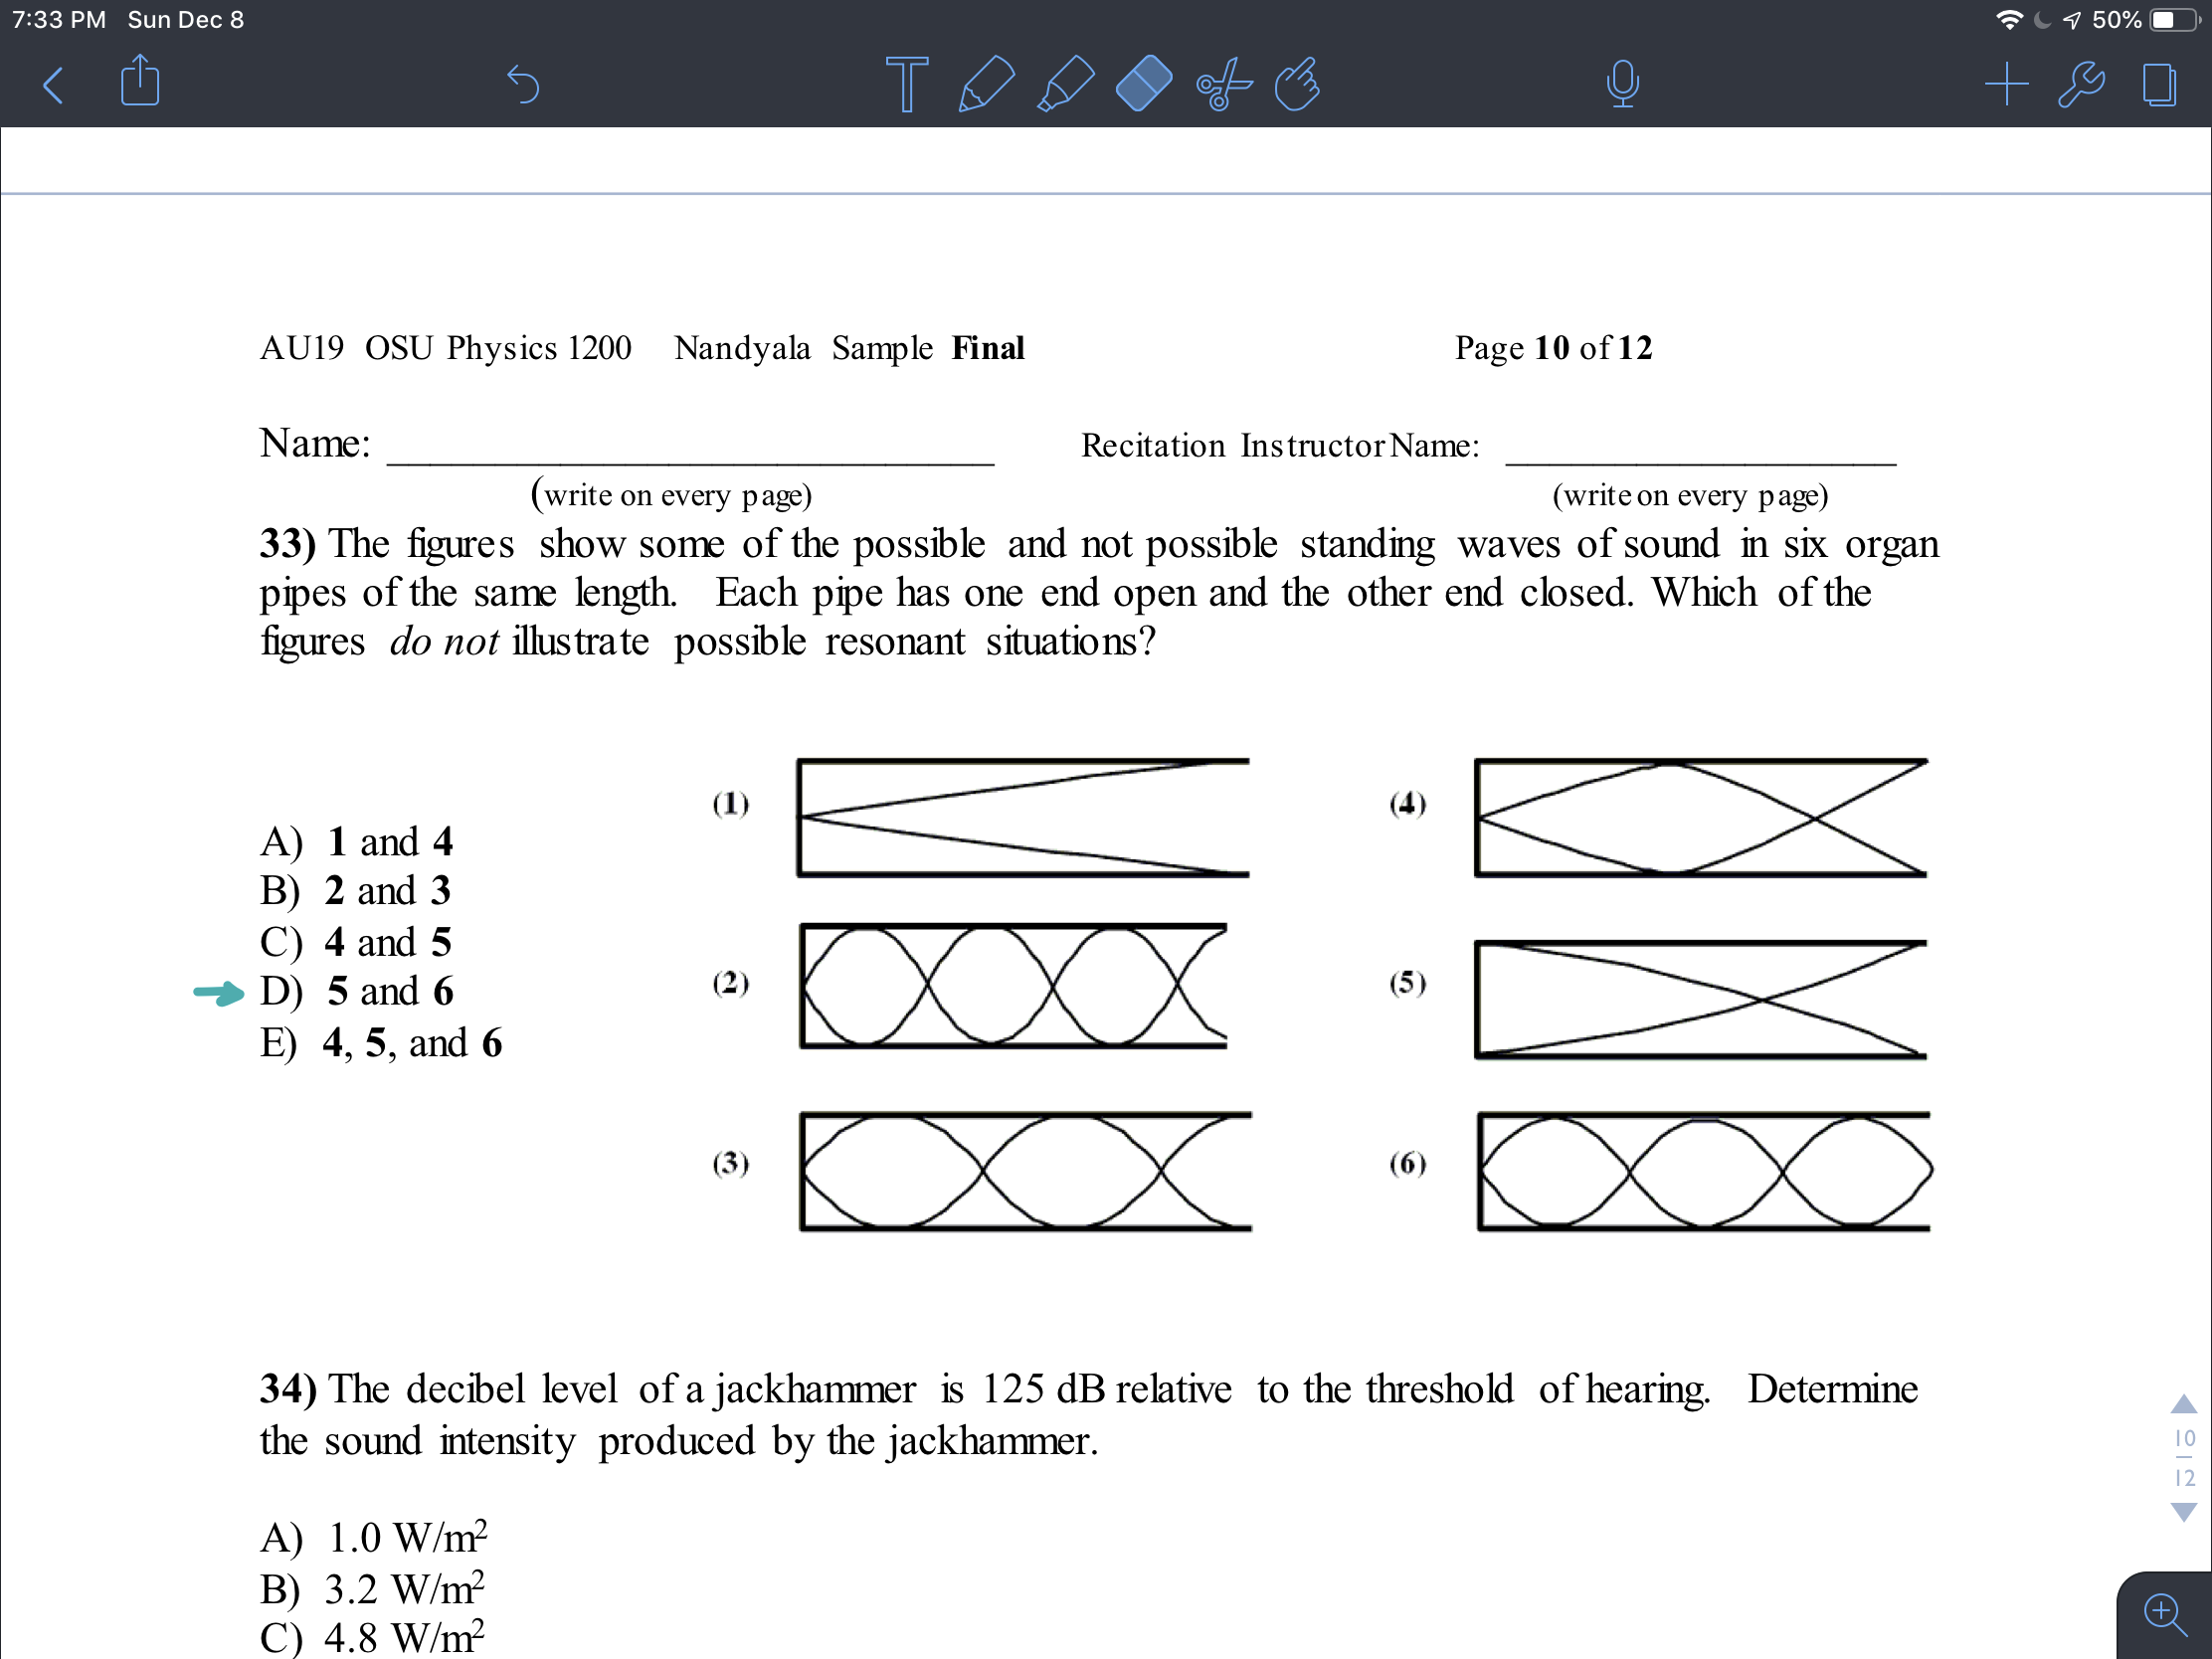 7:33 PM Sun Dec 8 9 50% AU19 OSU Physics 1200 Nandyala Sample Final Page 10 of 12 Name: Recitation Instructor Name: (write on every page) (write on every page) 33) The figures show some of the possible and not possible standing waves of sound in six organ pipes of the same length. Each pipe has one end open and the other end closed. Which of the figures do not illus trate possible resonant situations? (1) (4) A) 1 and 4 B) 2 and 3 C) 4 and 5 D) 5 and 6 E) 4, 5, and 6 XXX (2) (5) (3) (6) 34) The decibel level of a jackhammer is 125 dB relative to the threshold of hearing. Determine the sound intensity produced by the jackhammer. 10 12 A) 1.0 W/m? B) 3.2 W/m? C) 4.8 W/m?